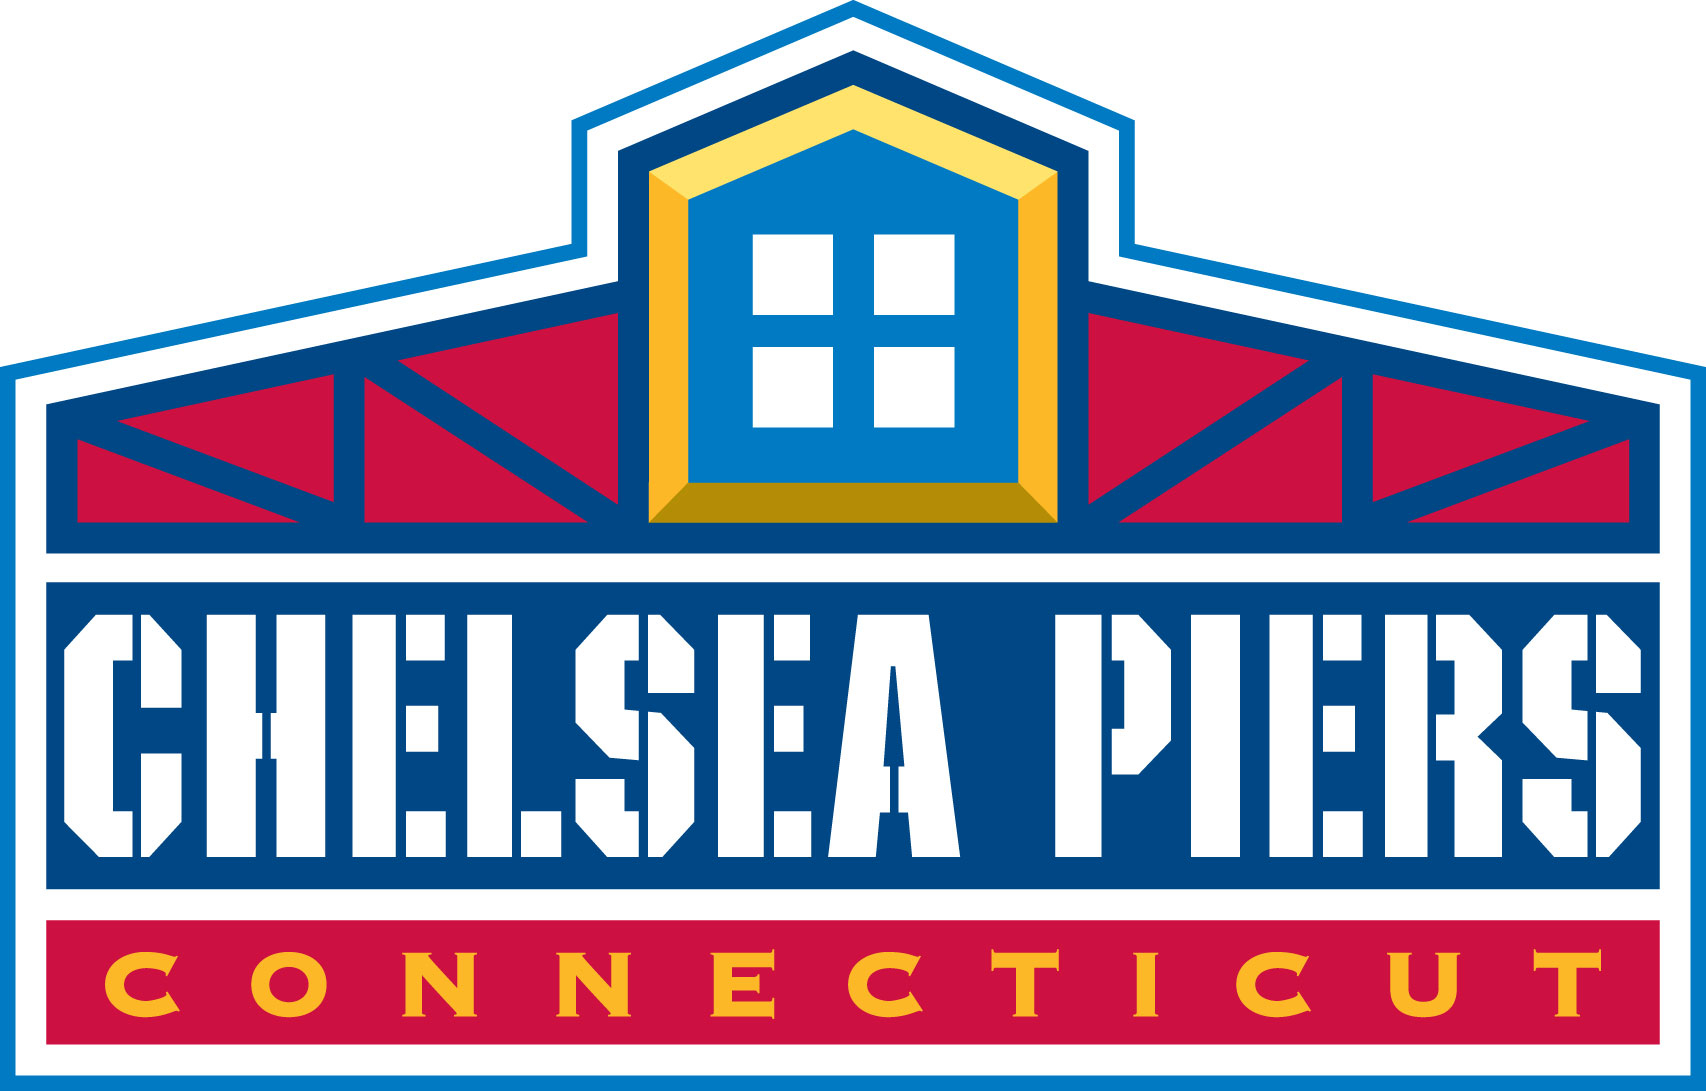 Chelsea Piers Connecticut logo